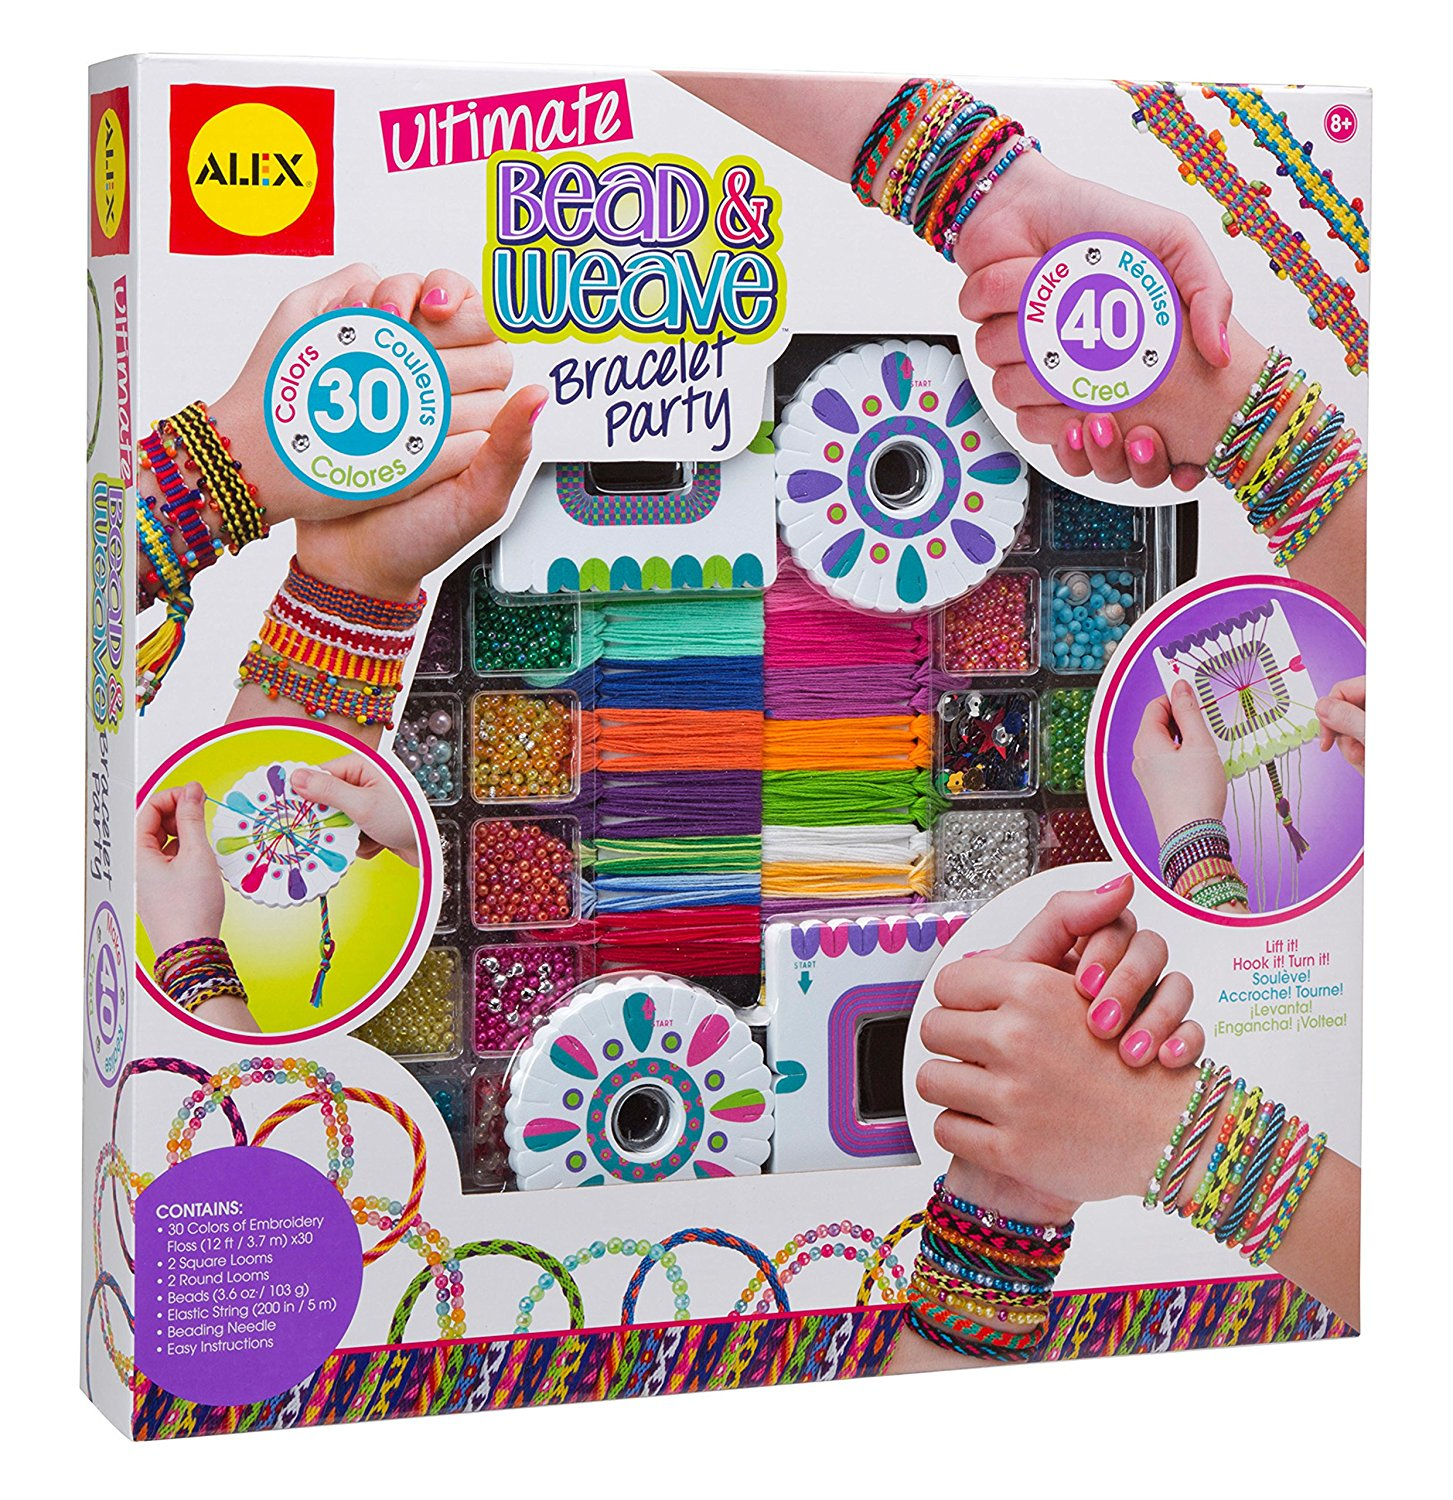 Alex Toys Diy Wear Ultimate Bead And Weave Bracelet Party Make 40 Friendship Bracelets In So Many Styles Beaded Woven Flat Round By